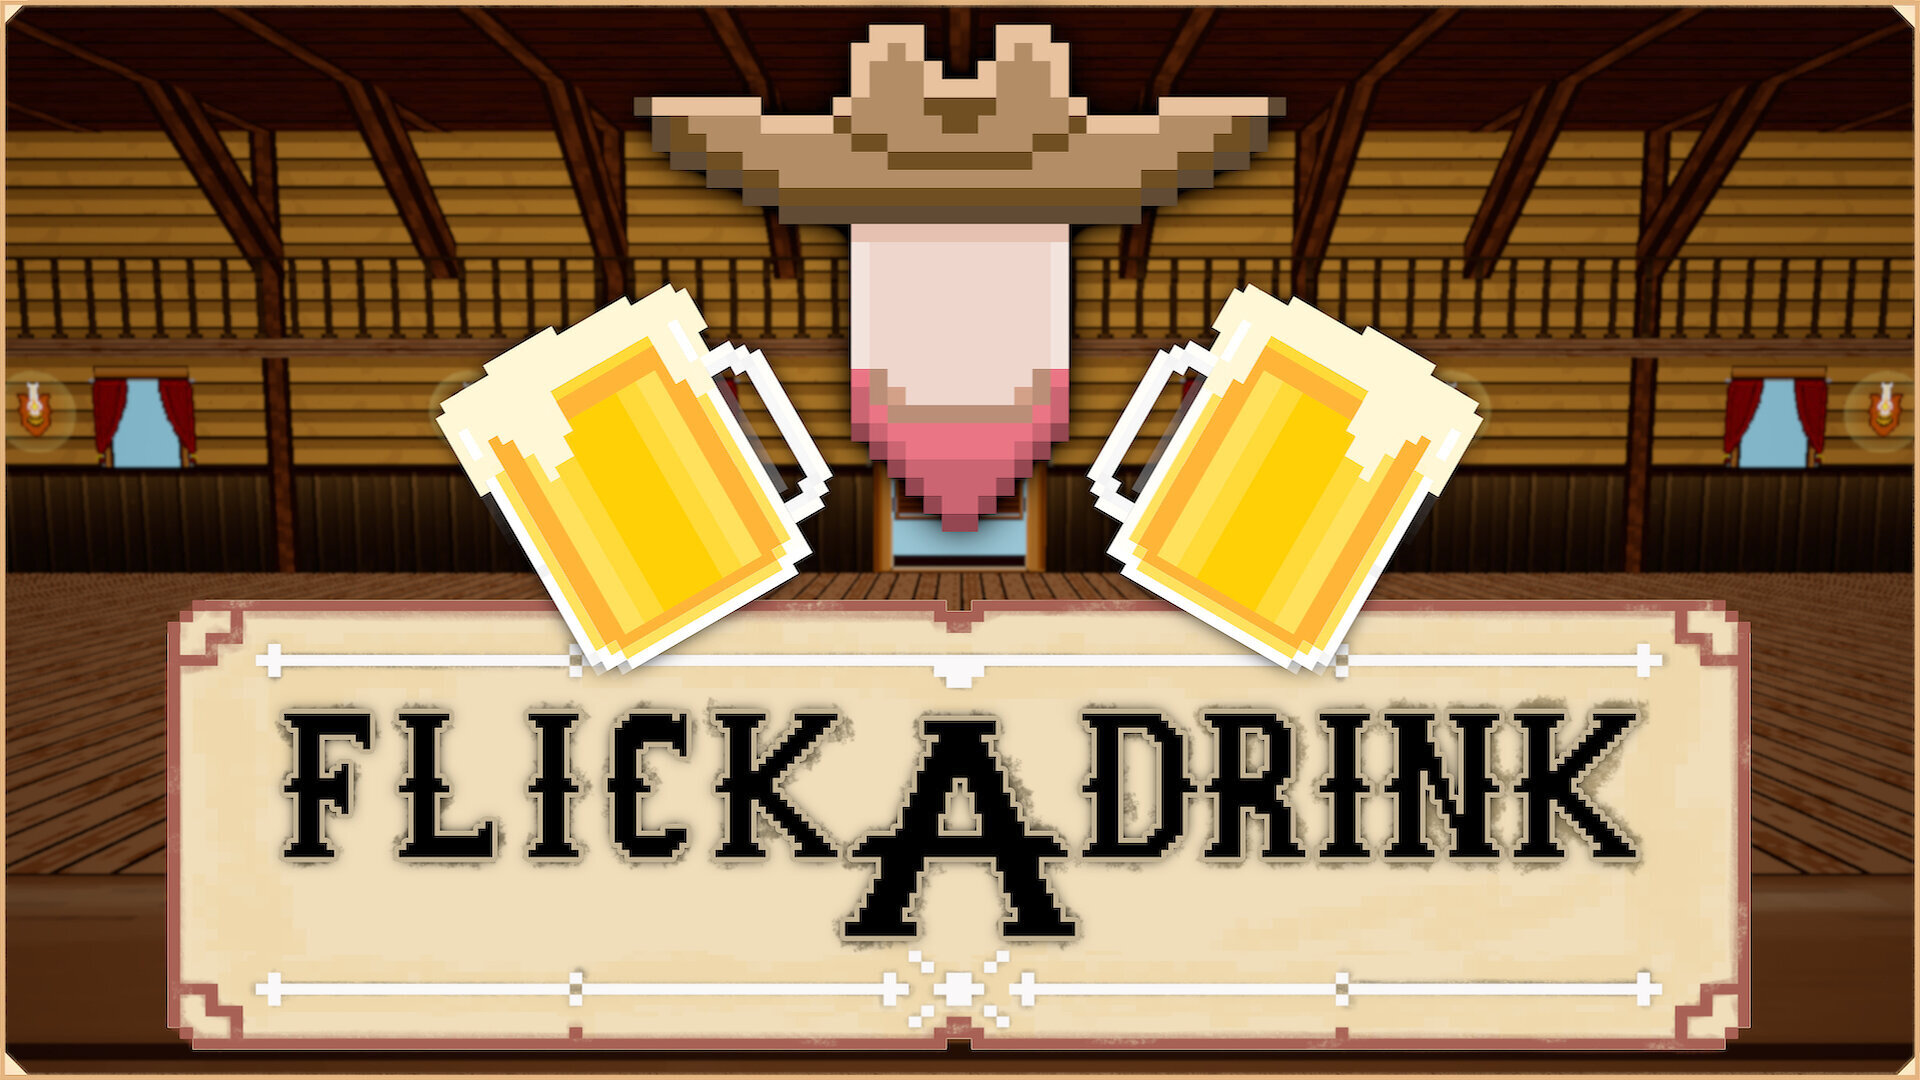 Download FlickADrink - Try out my first mobile game! It's a western a minigame town filled with activities.